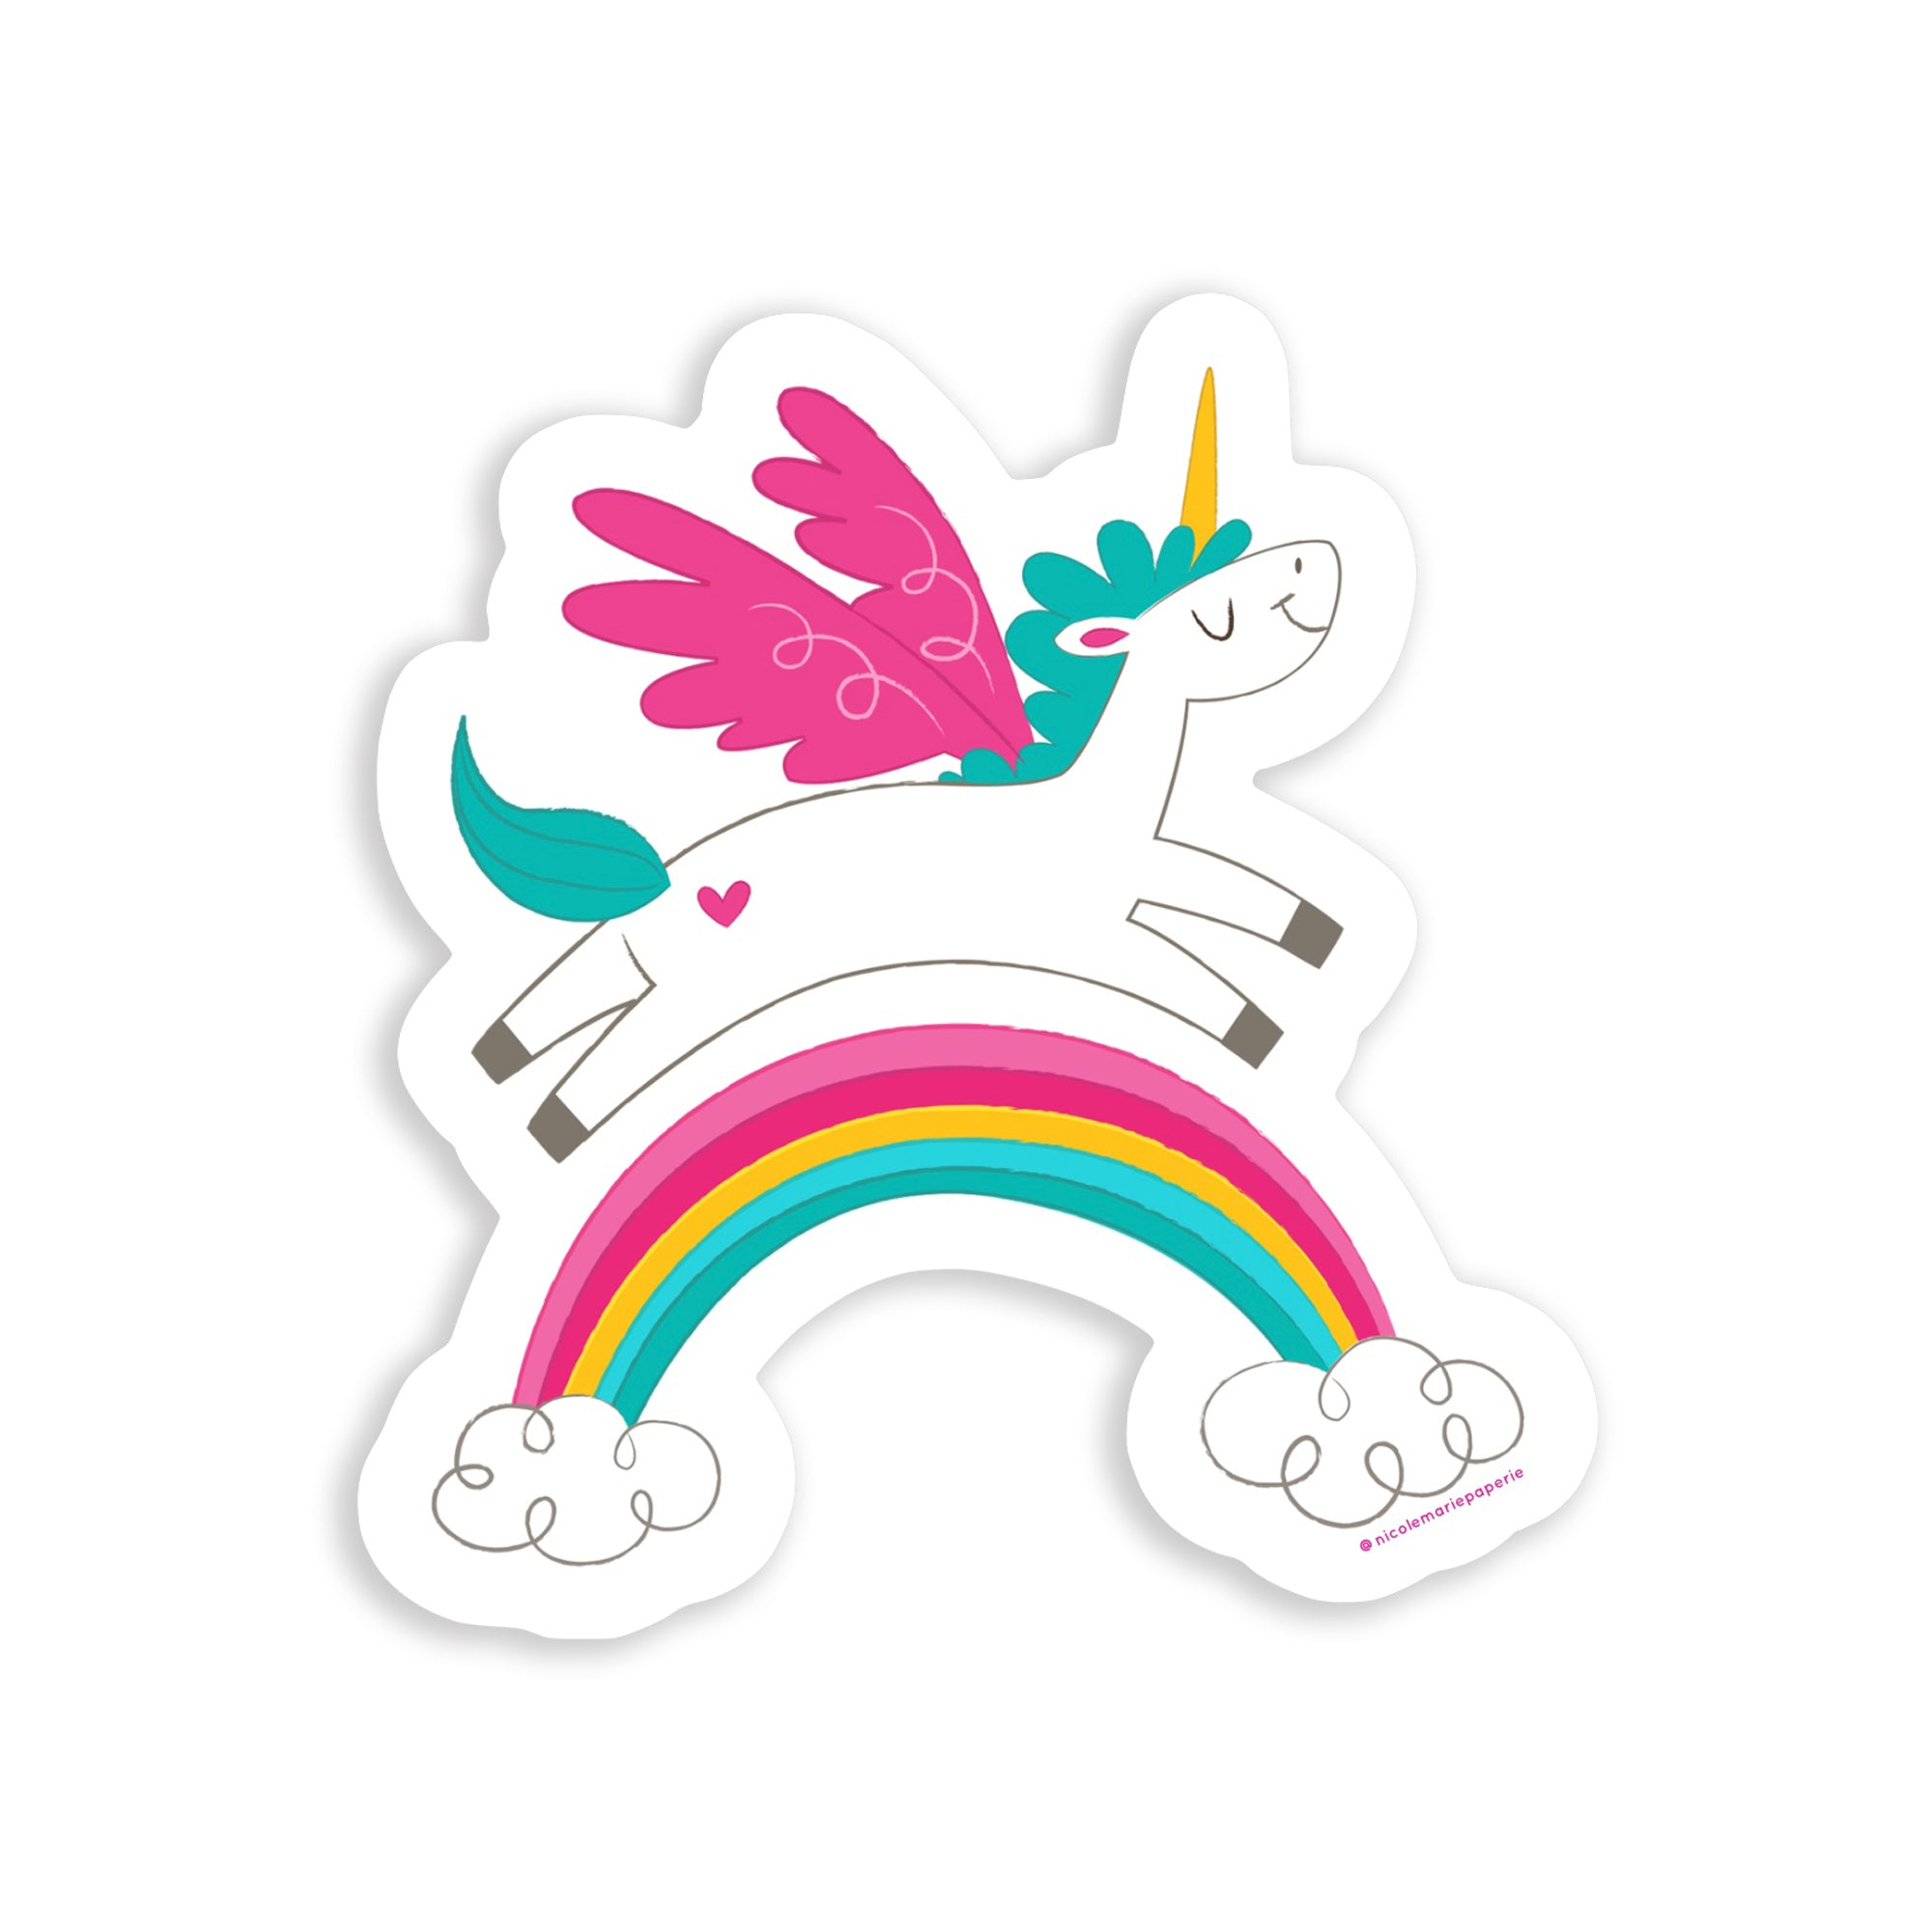 die cut stickers, shaped stickers, custom stickers, custom vinyl product, cool custom stickers, custom logo stickers, custom vinyl decals, contour cut stickers, die cut labels, waterproof logo, unicorn sticker, rainbow, black owned business